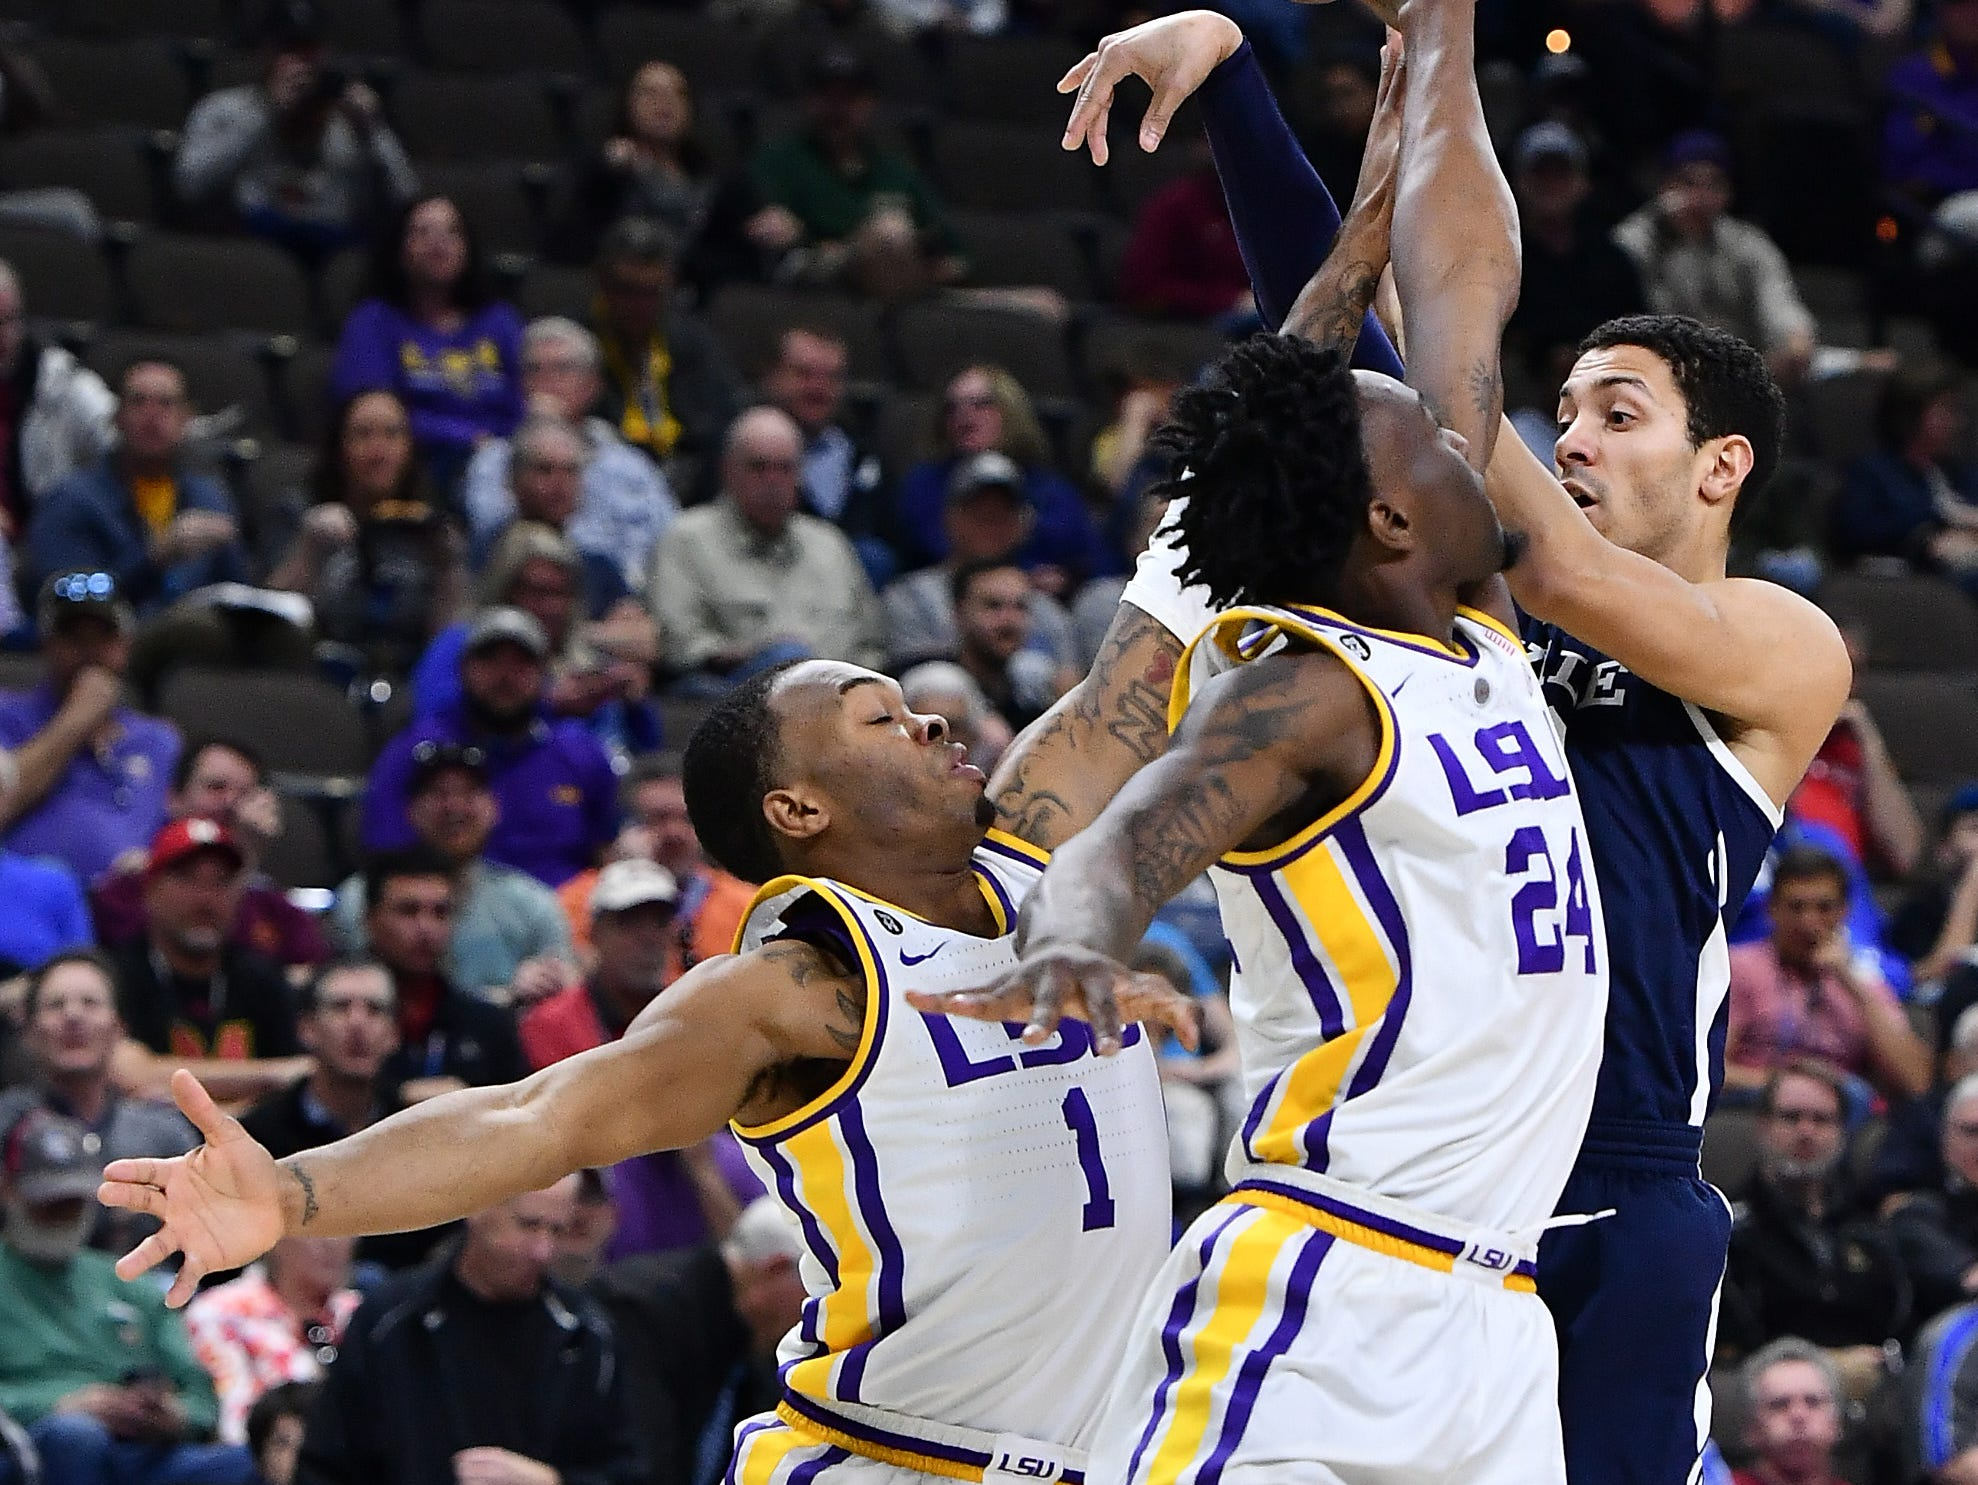 Mar 21, 2019; Jacksonville, FL, USA; Yale Bulldogs guard Alex Copeland (3) shoots against LSU Tigers guard Javonte Smart (1) and forward Emmitt Williams (24) during the first half in the first round of the 2019 NCAA Tournament at Jacksonville Veterans Memorial Arena. Mandatory Credit: John David Mercer-USA TODAY Sports